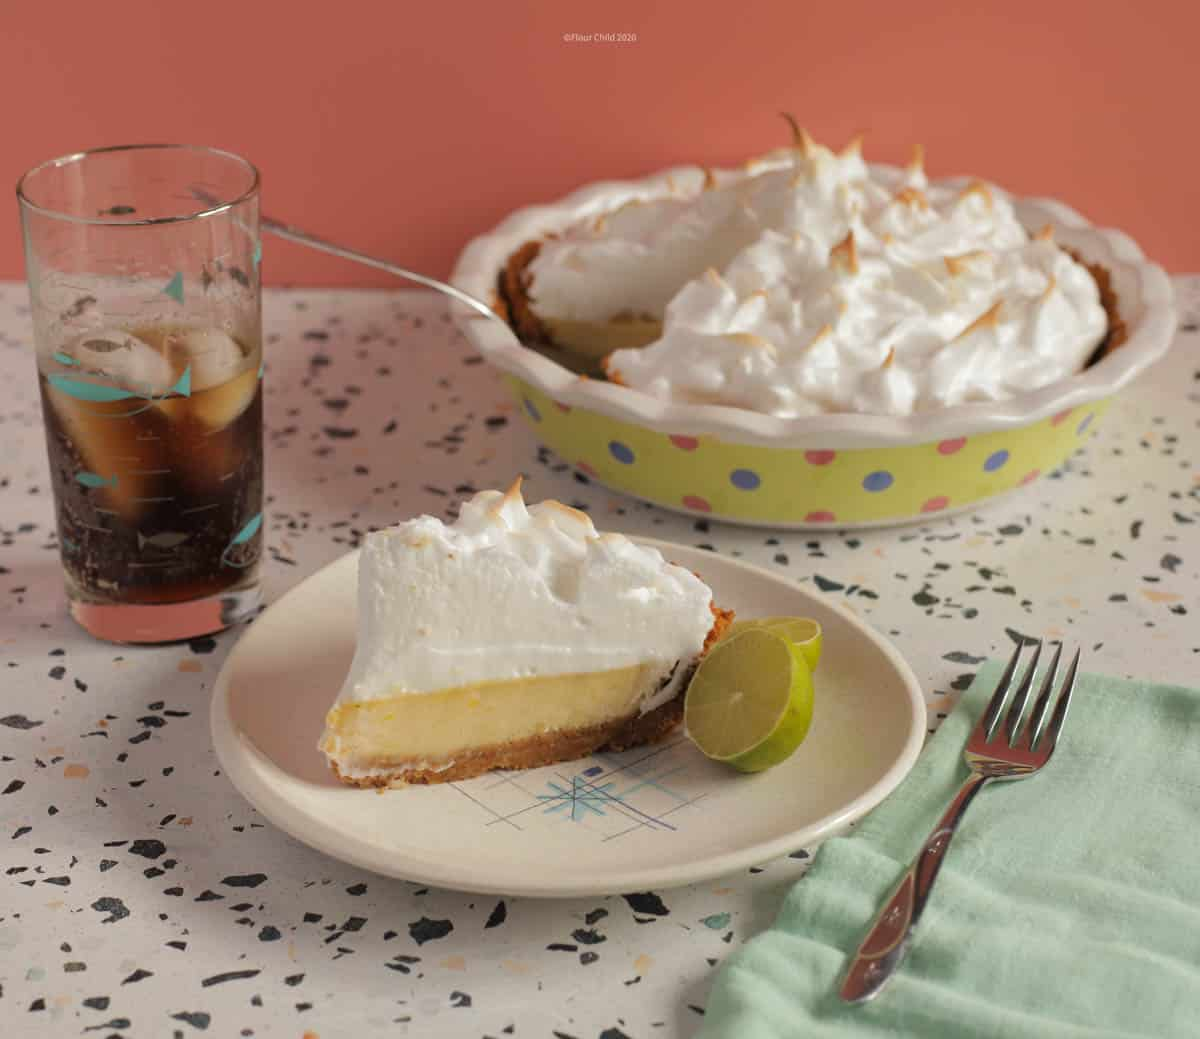 A lice of key lime pie on a plate with a lime wedge next to it. Pie dish in the background and a glass of coke and a fork next to the plate.